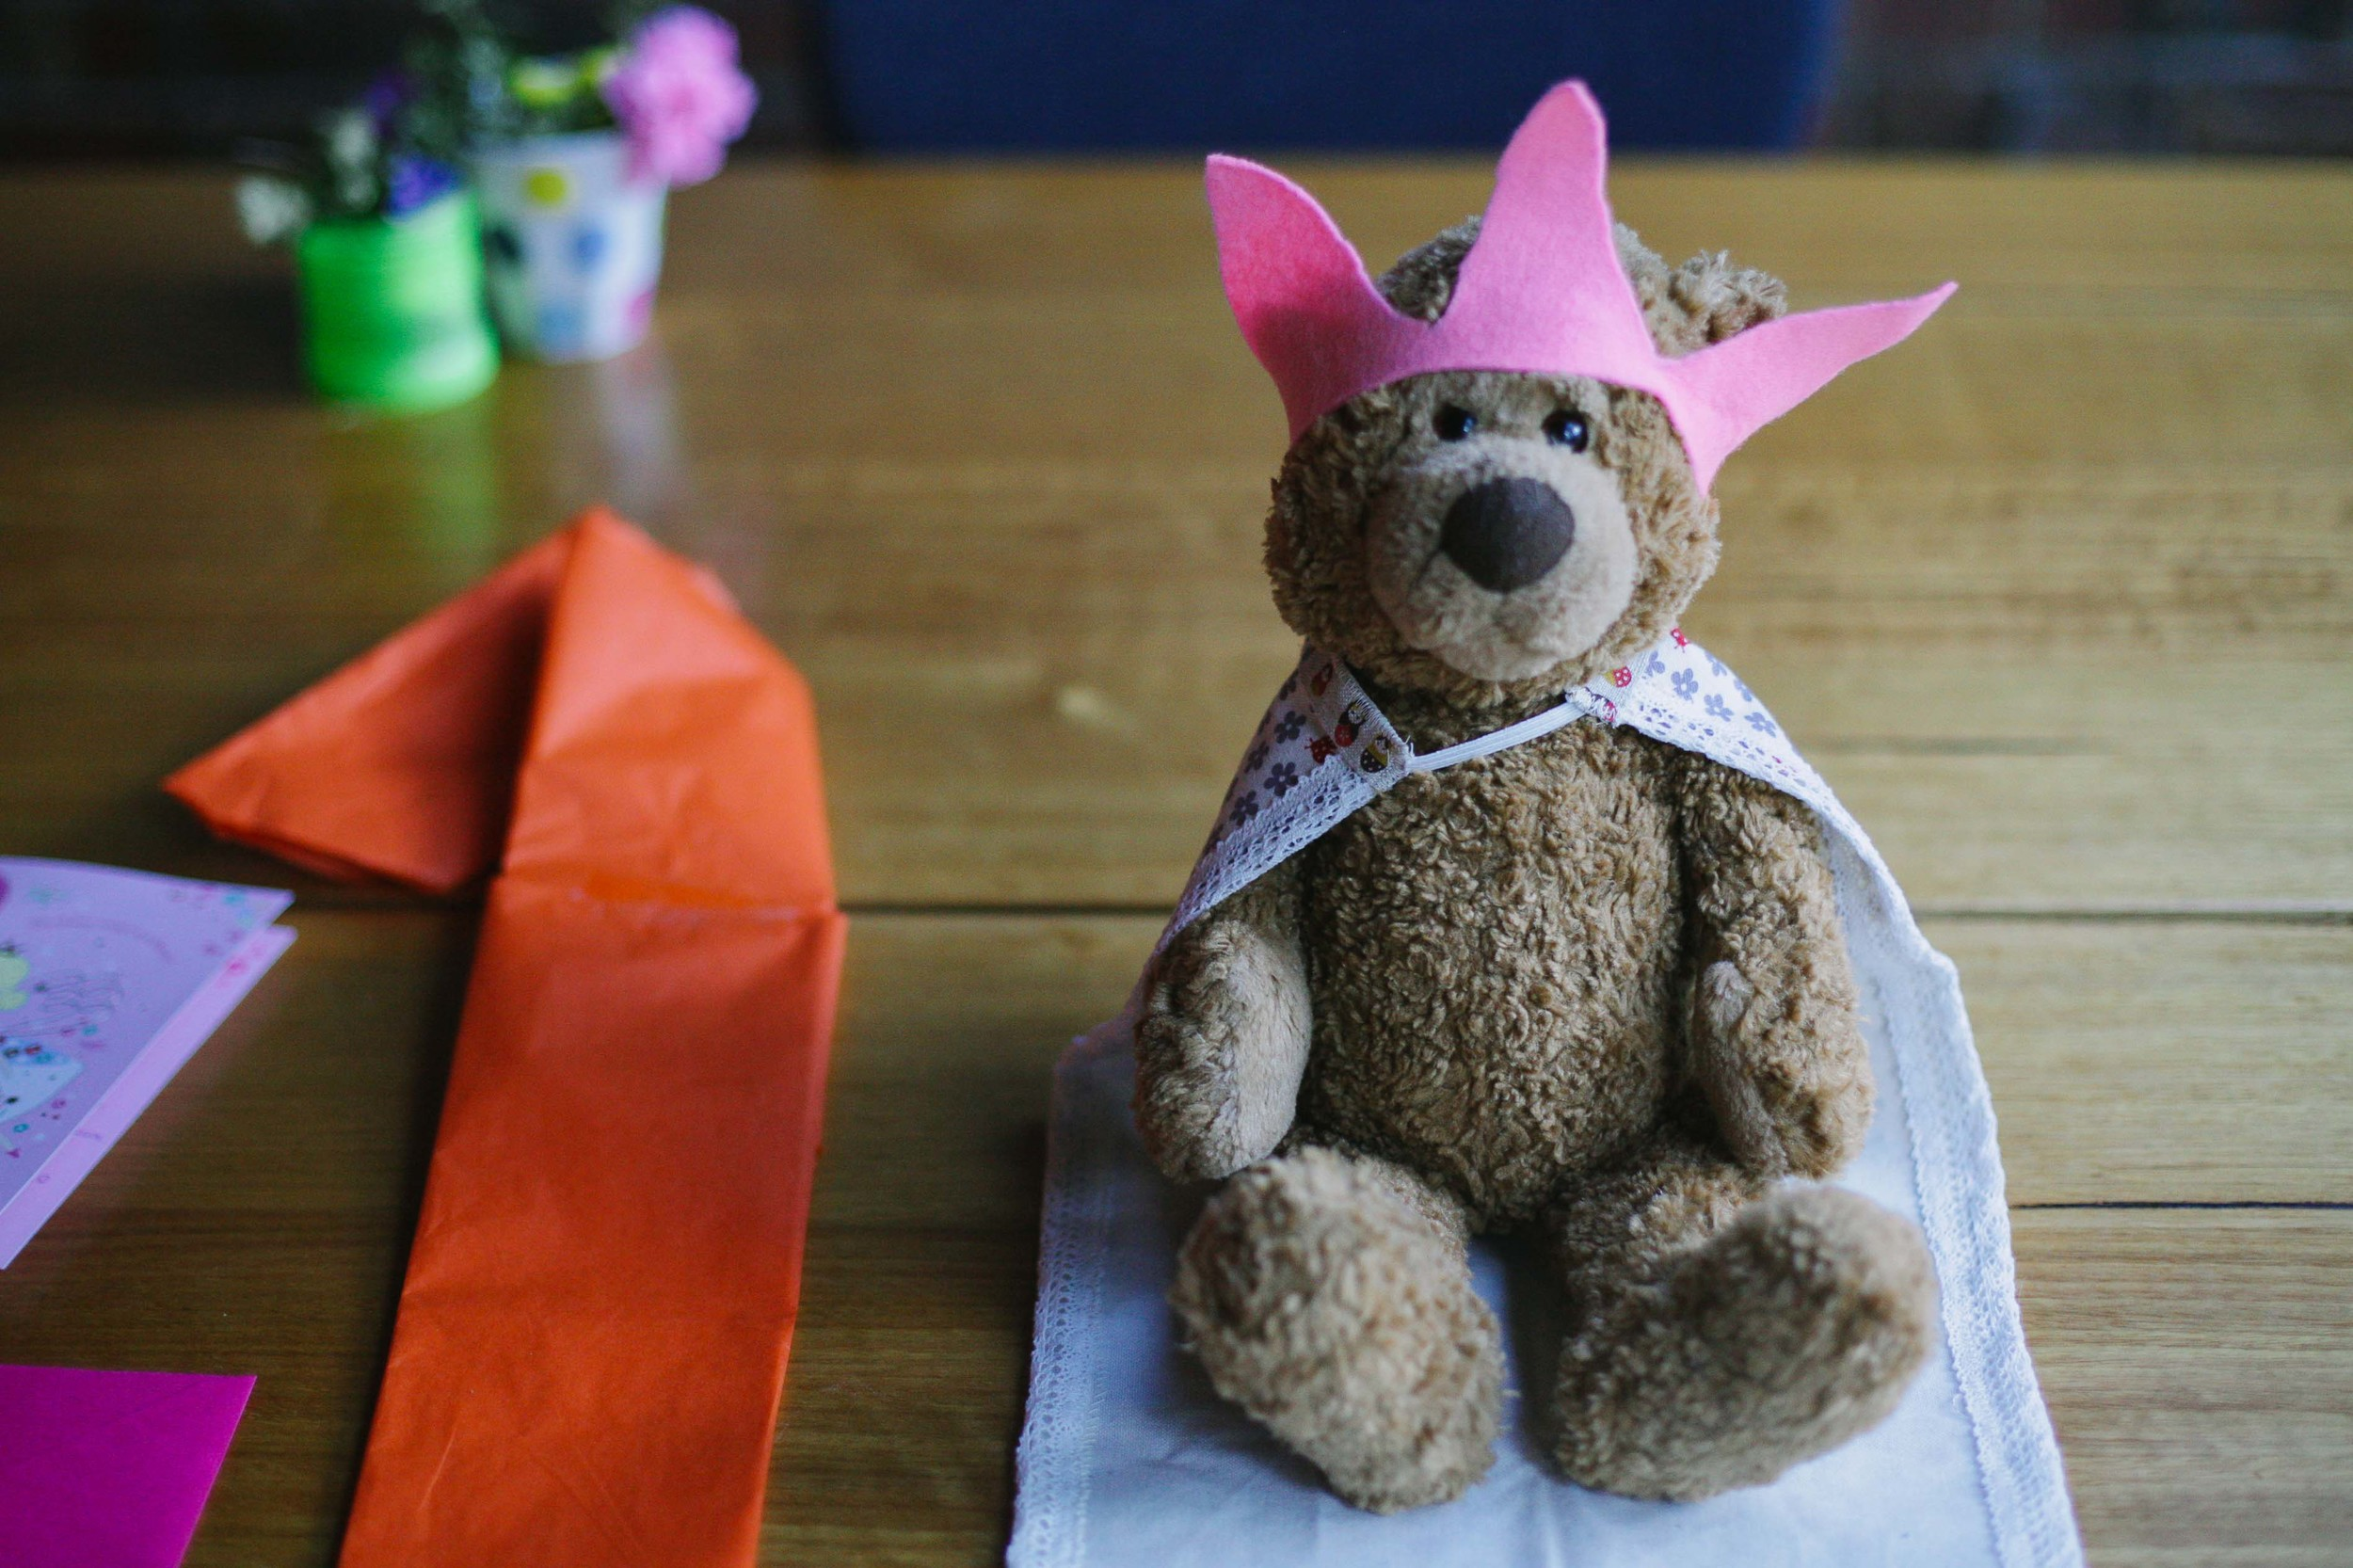 Middle kid made the cape and crown for the little sister's teddy for her birthday.